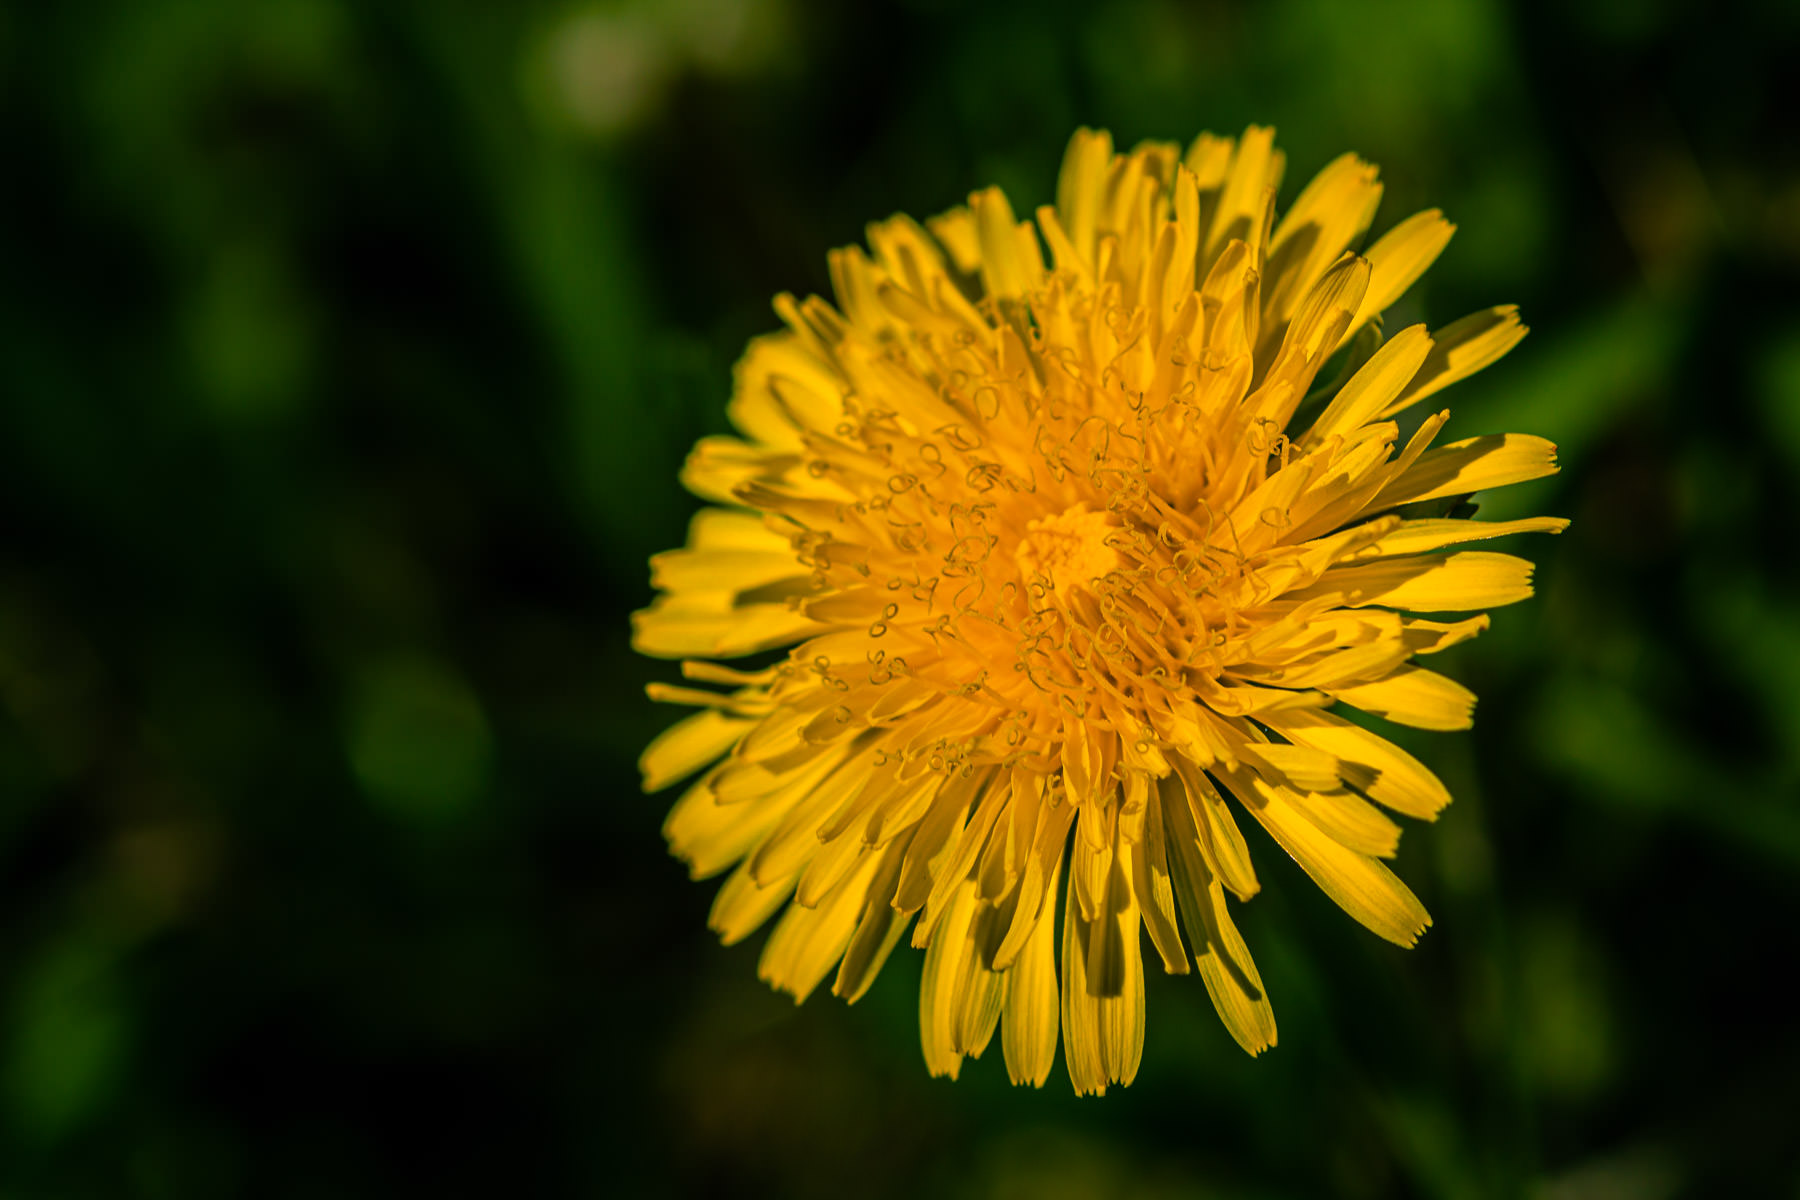 A dandelion flower spotted in a McKinney, Texas, lawn.